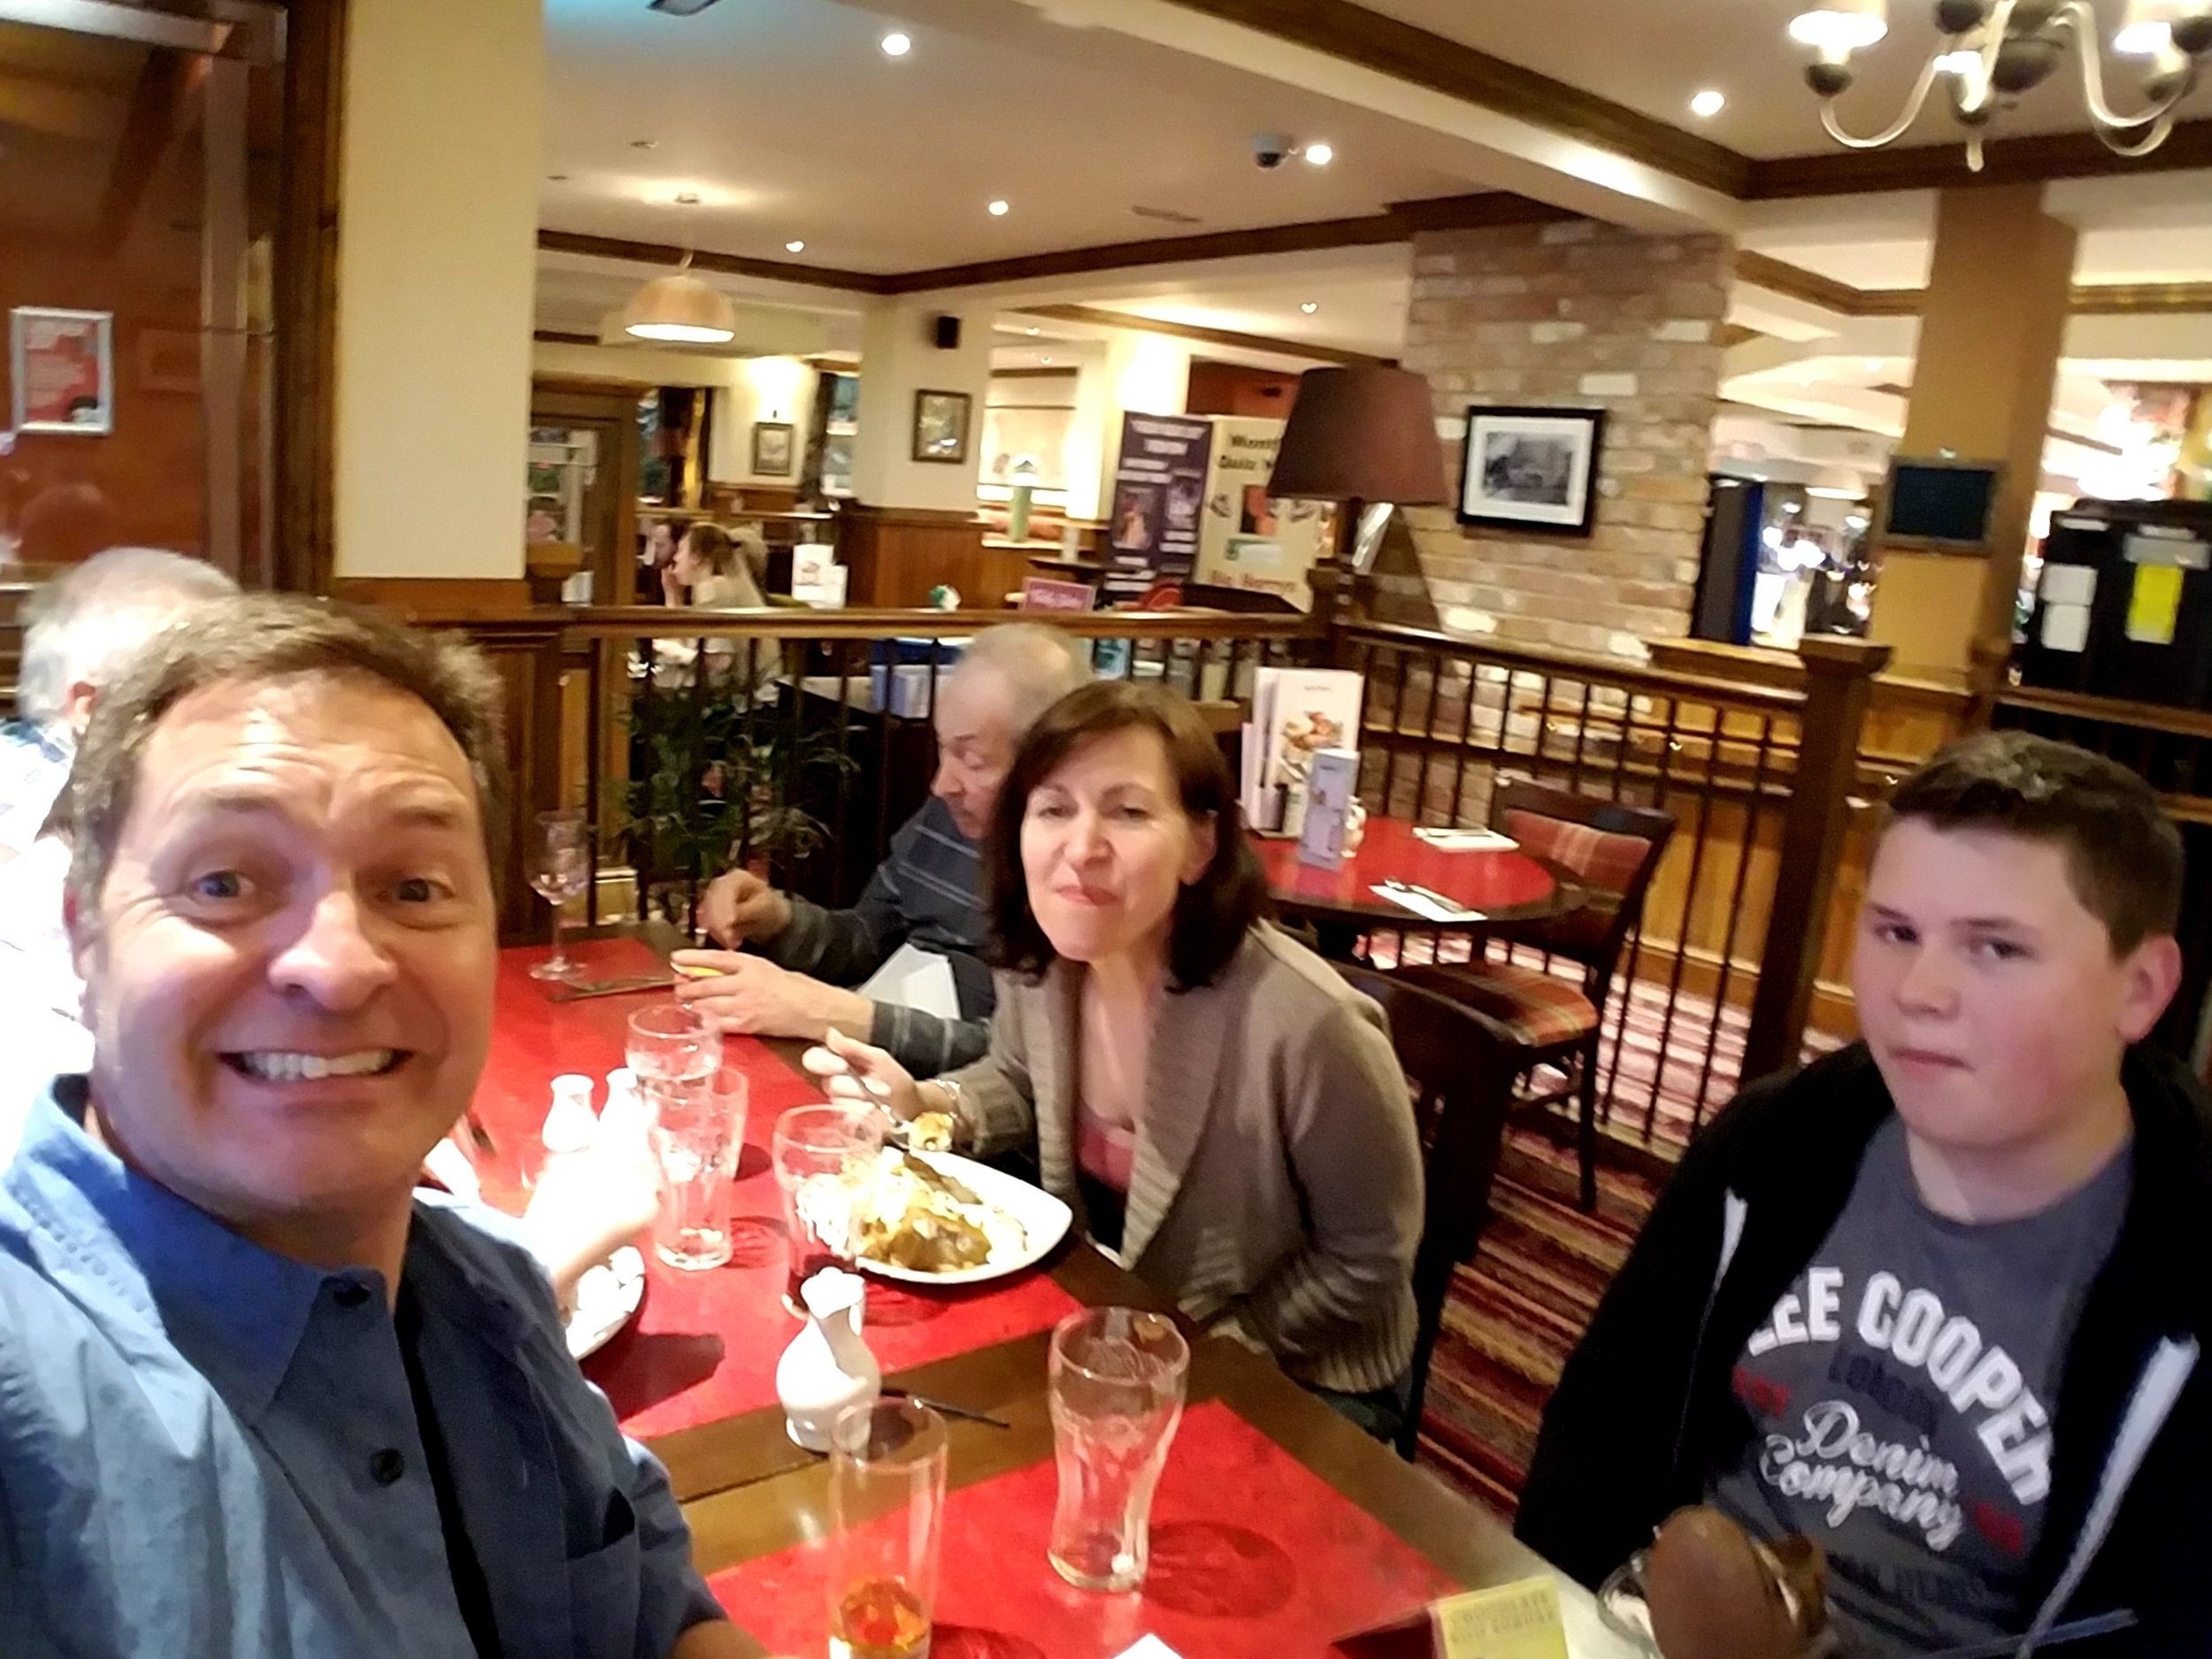 Family dinner in England